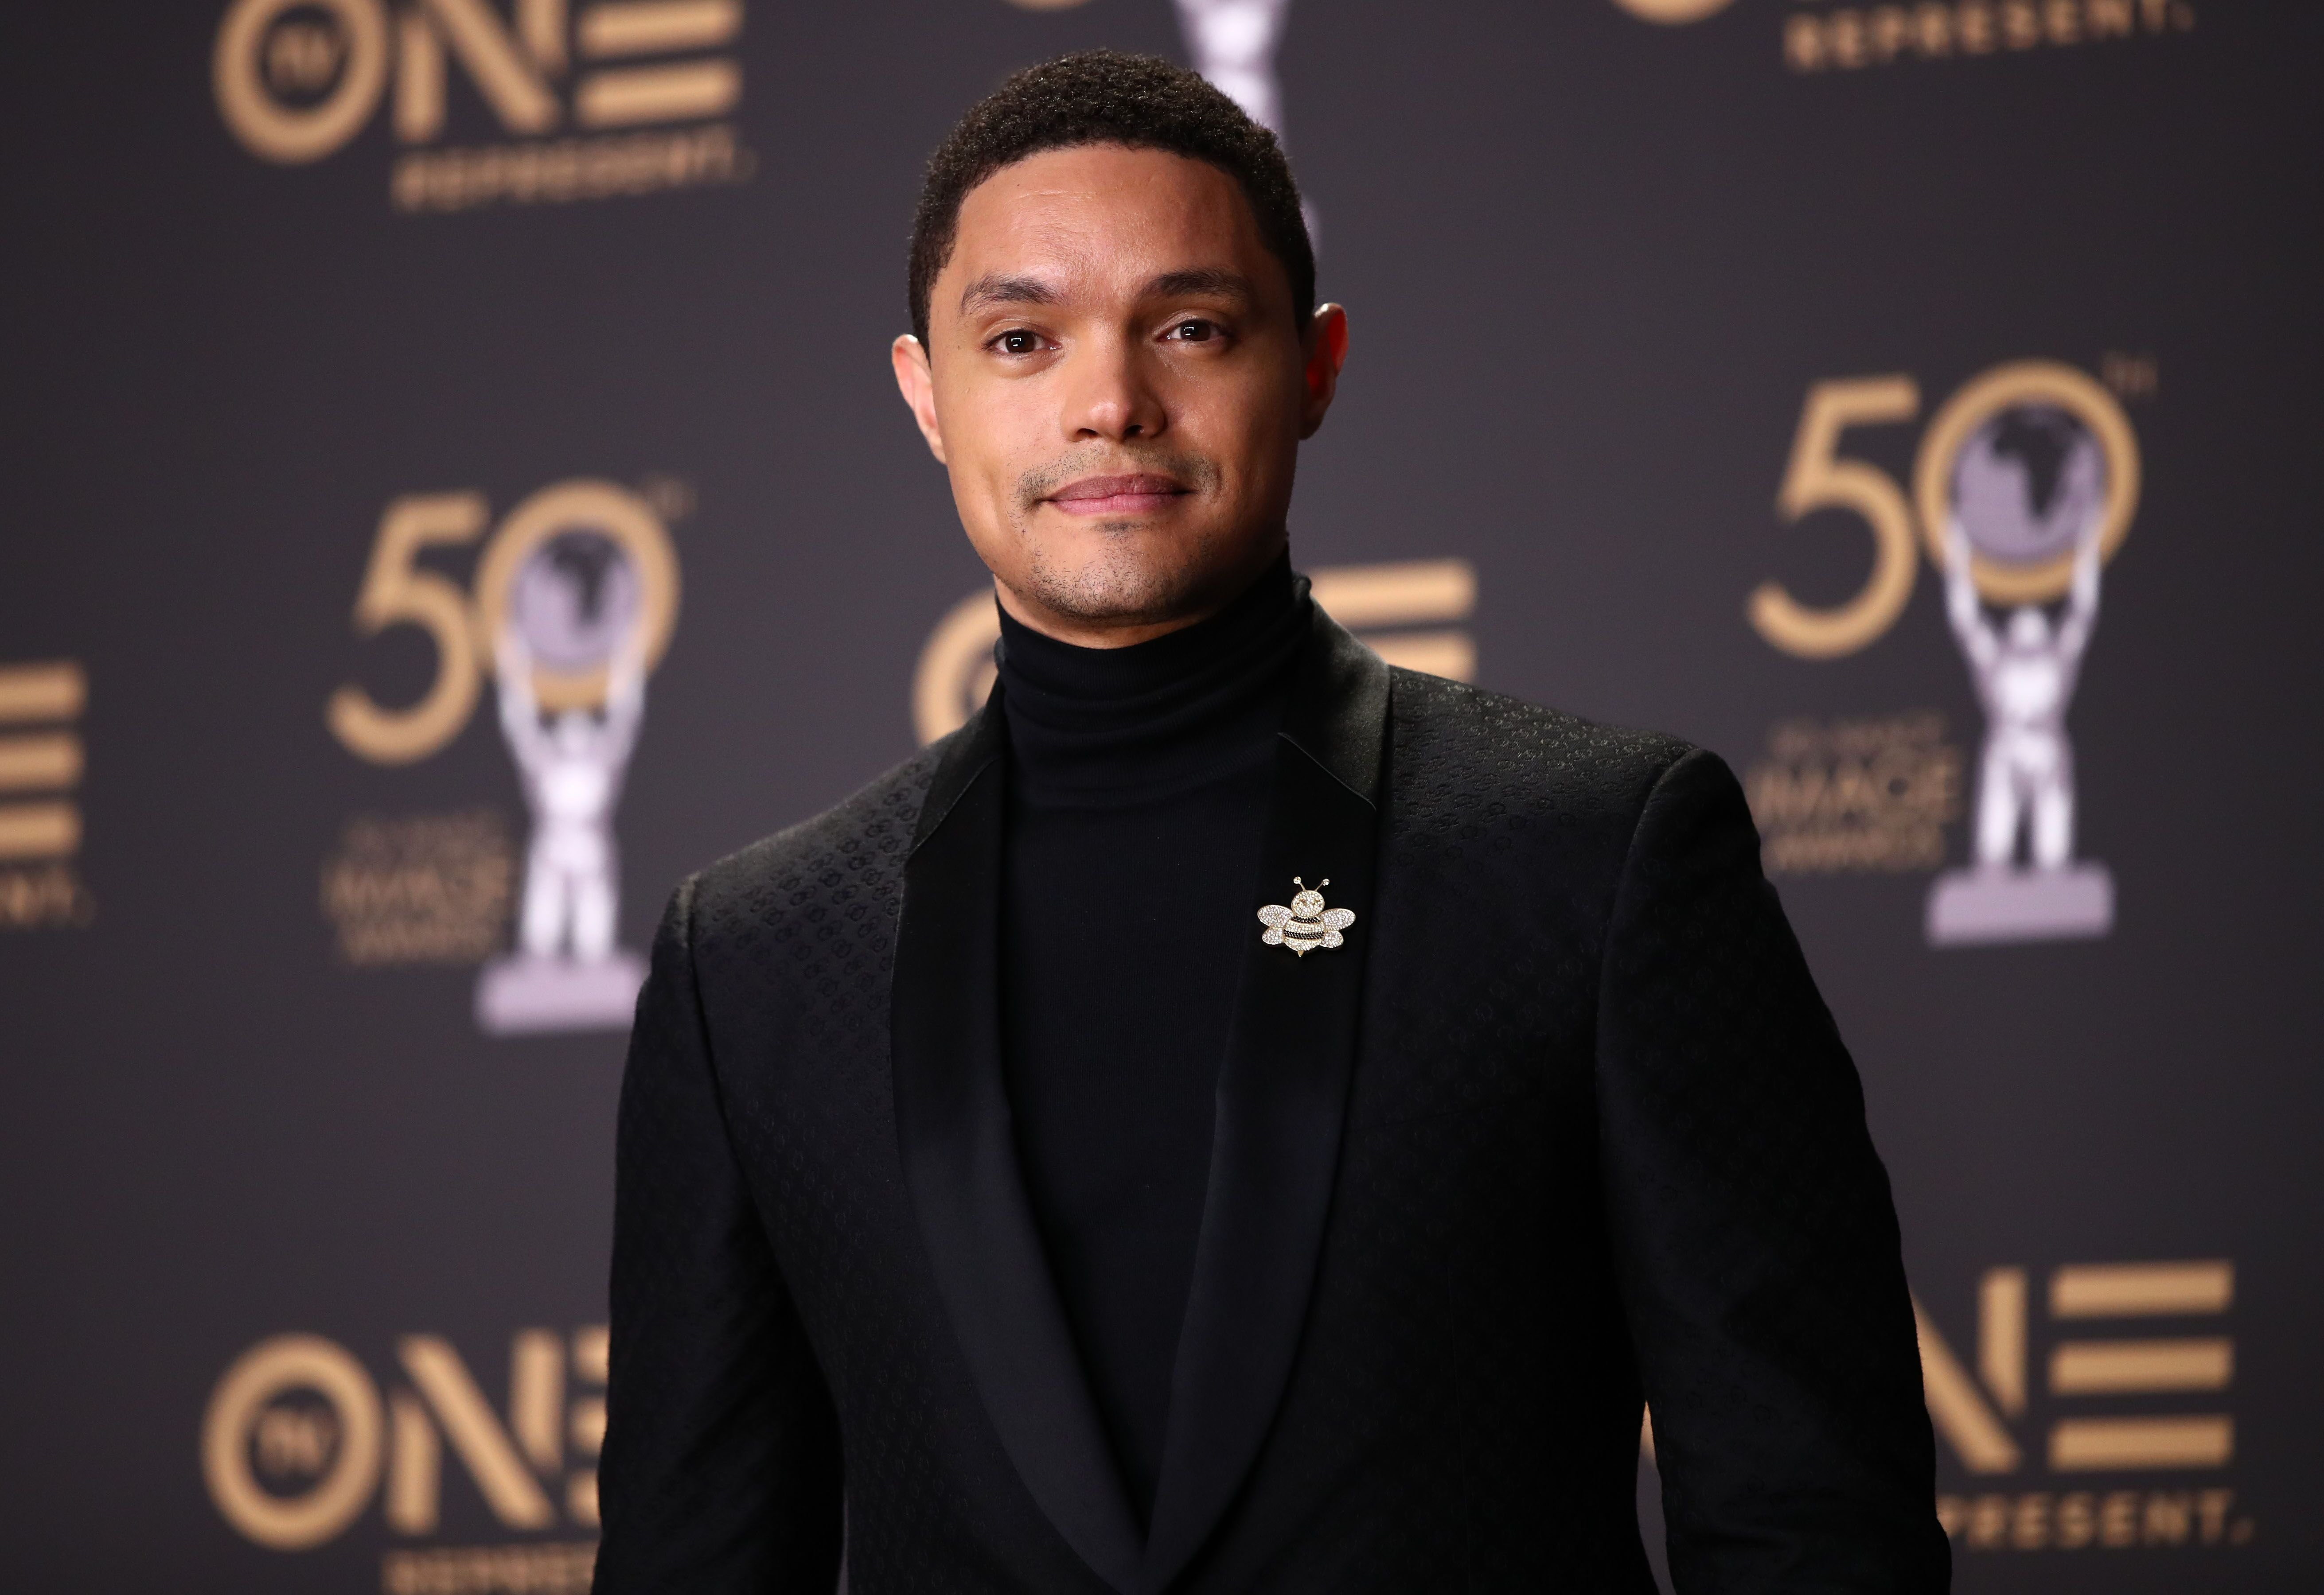 Trevor Noah attends the 50th NAACP Image Awards at Dolby Theatre on March 30, 2019 in Hollywood, California. | Source: Getty Images